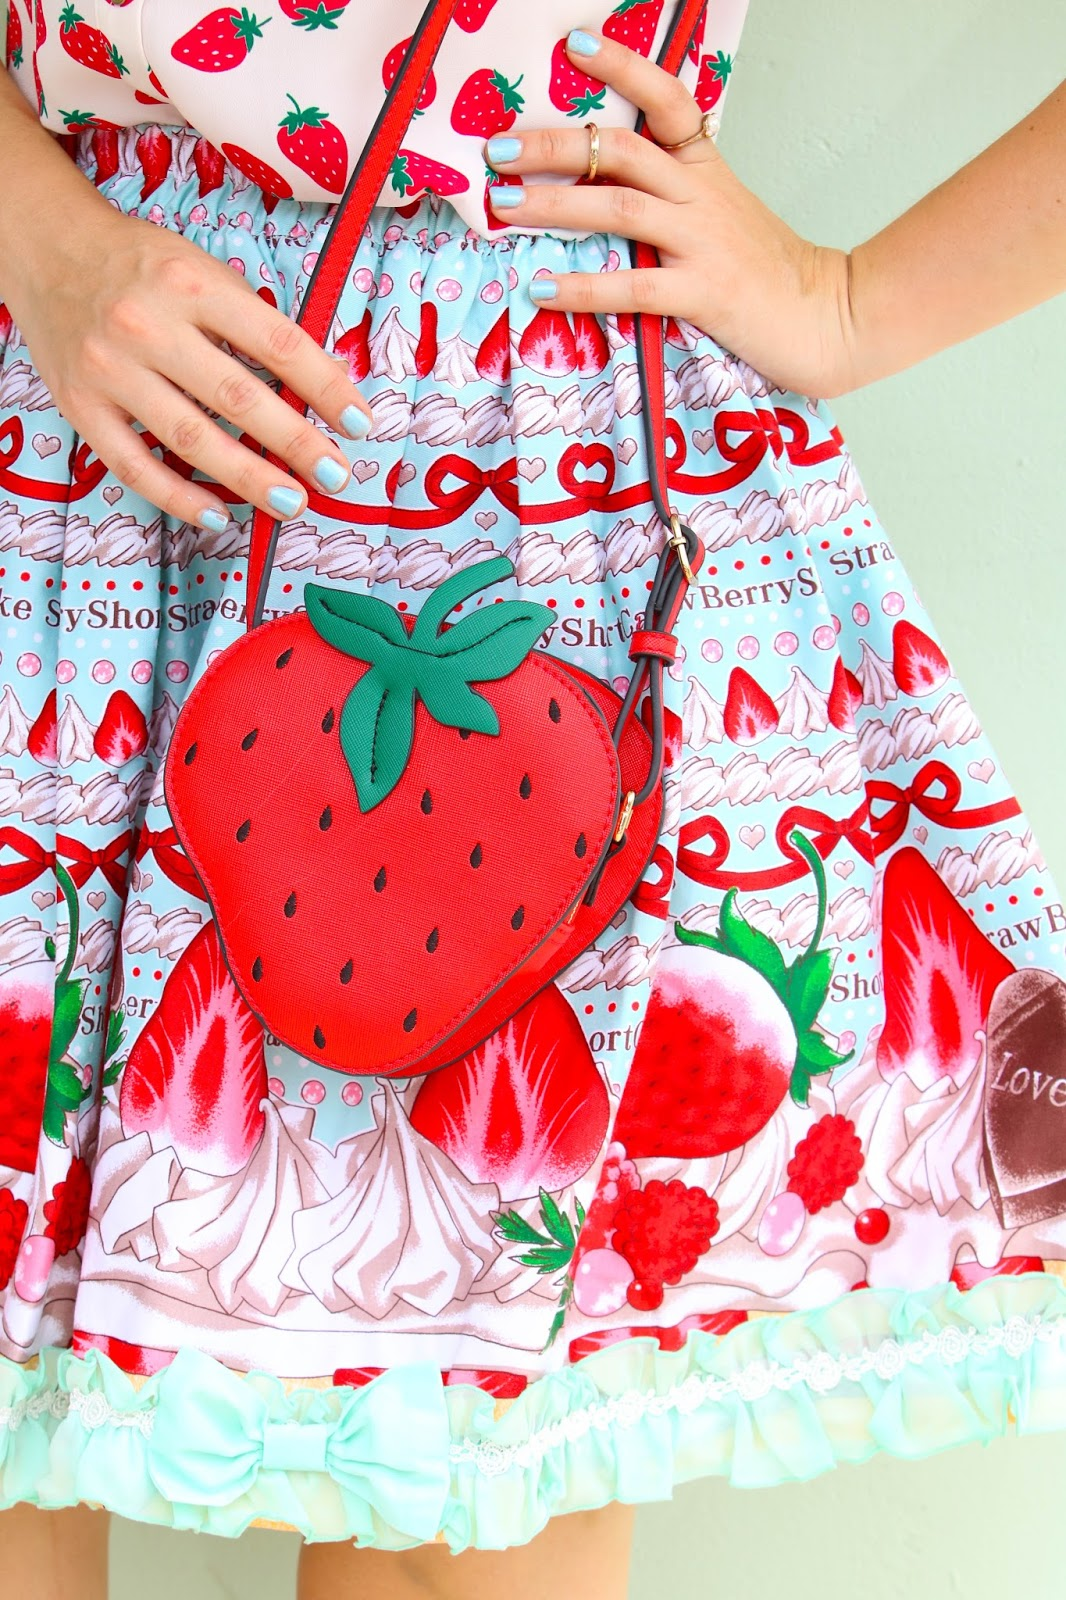 Outfit inspired by Strawberry Shortcake